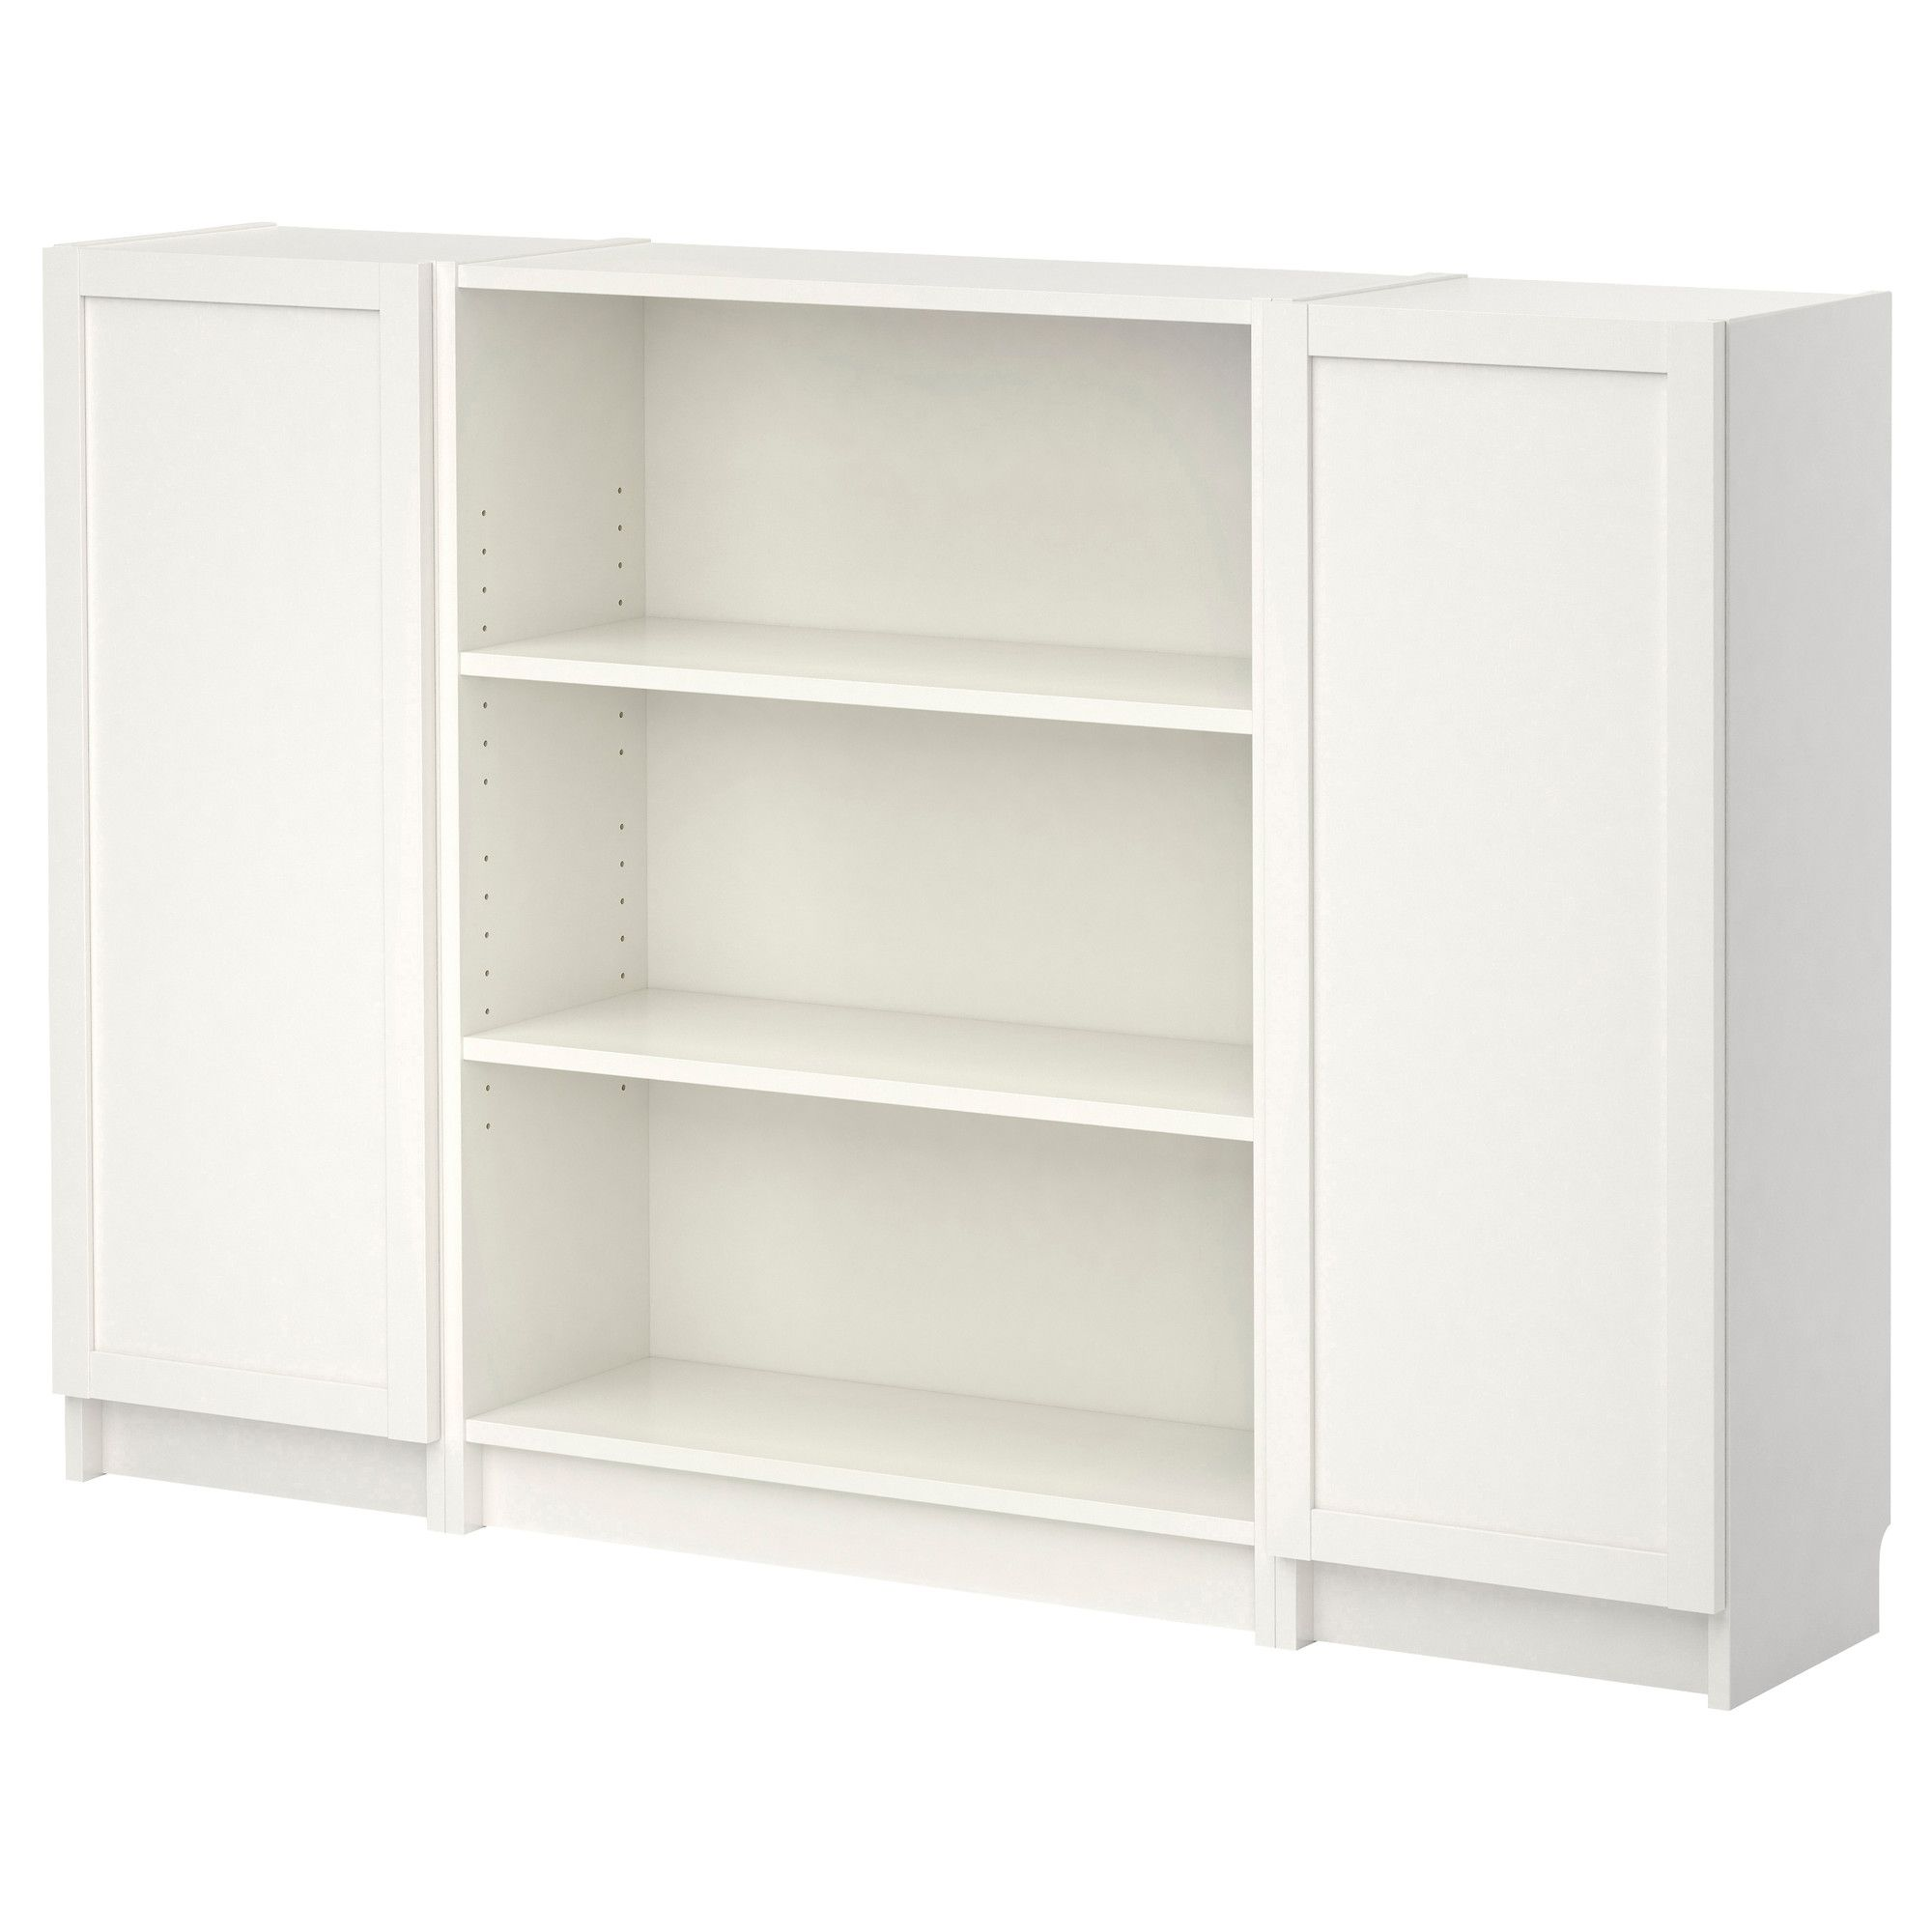 Ikea Libreria Billy Ante.Billy Libreria Con Ante Bianco Ikea Em Ikea Billy Bookcase